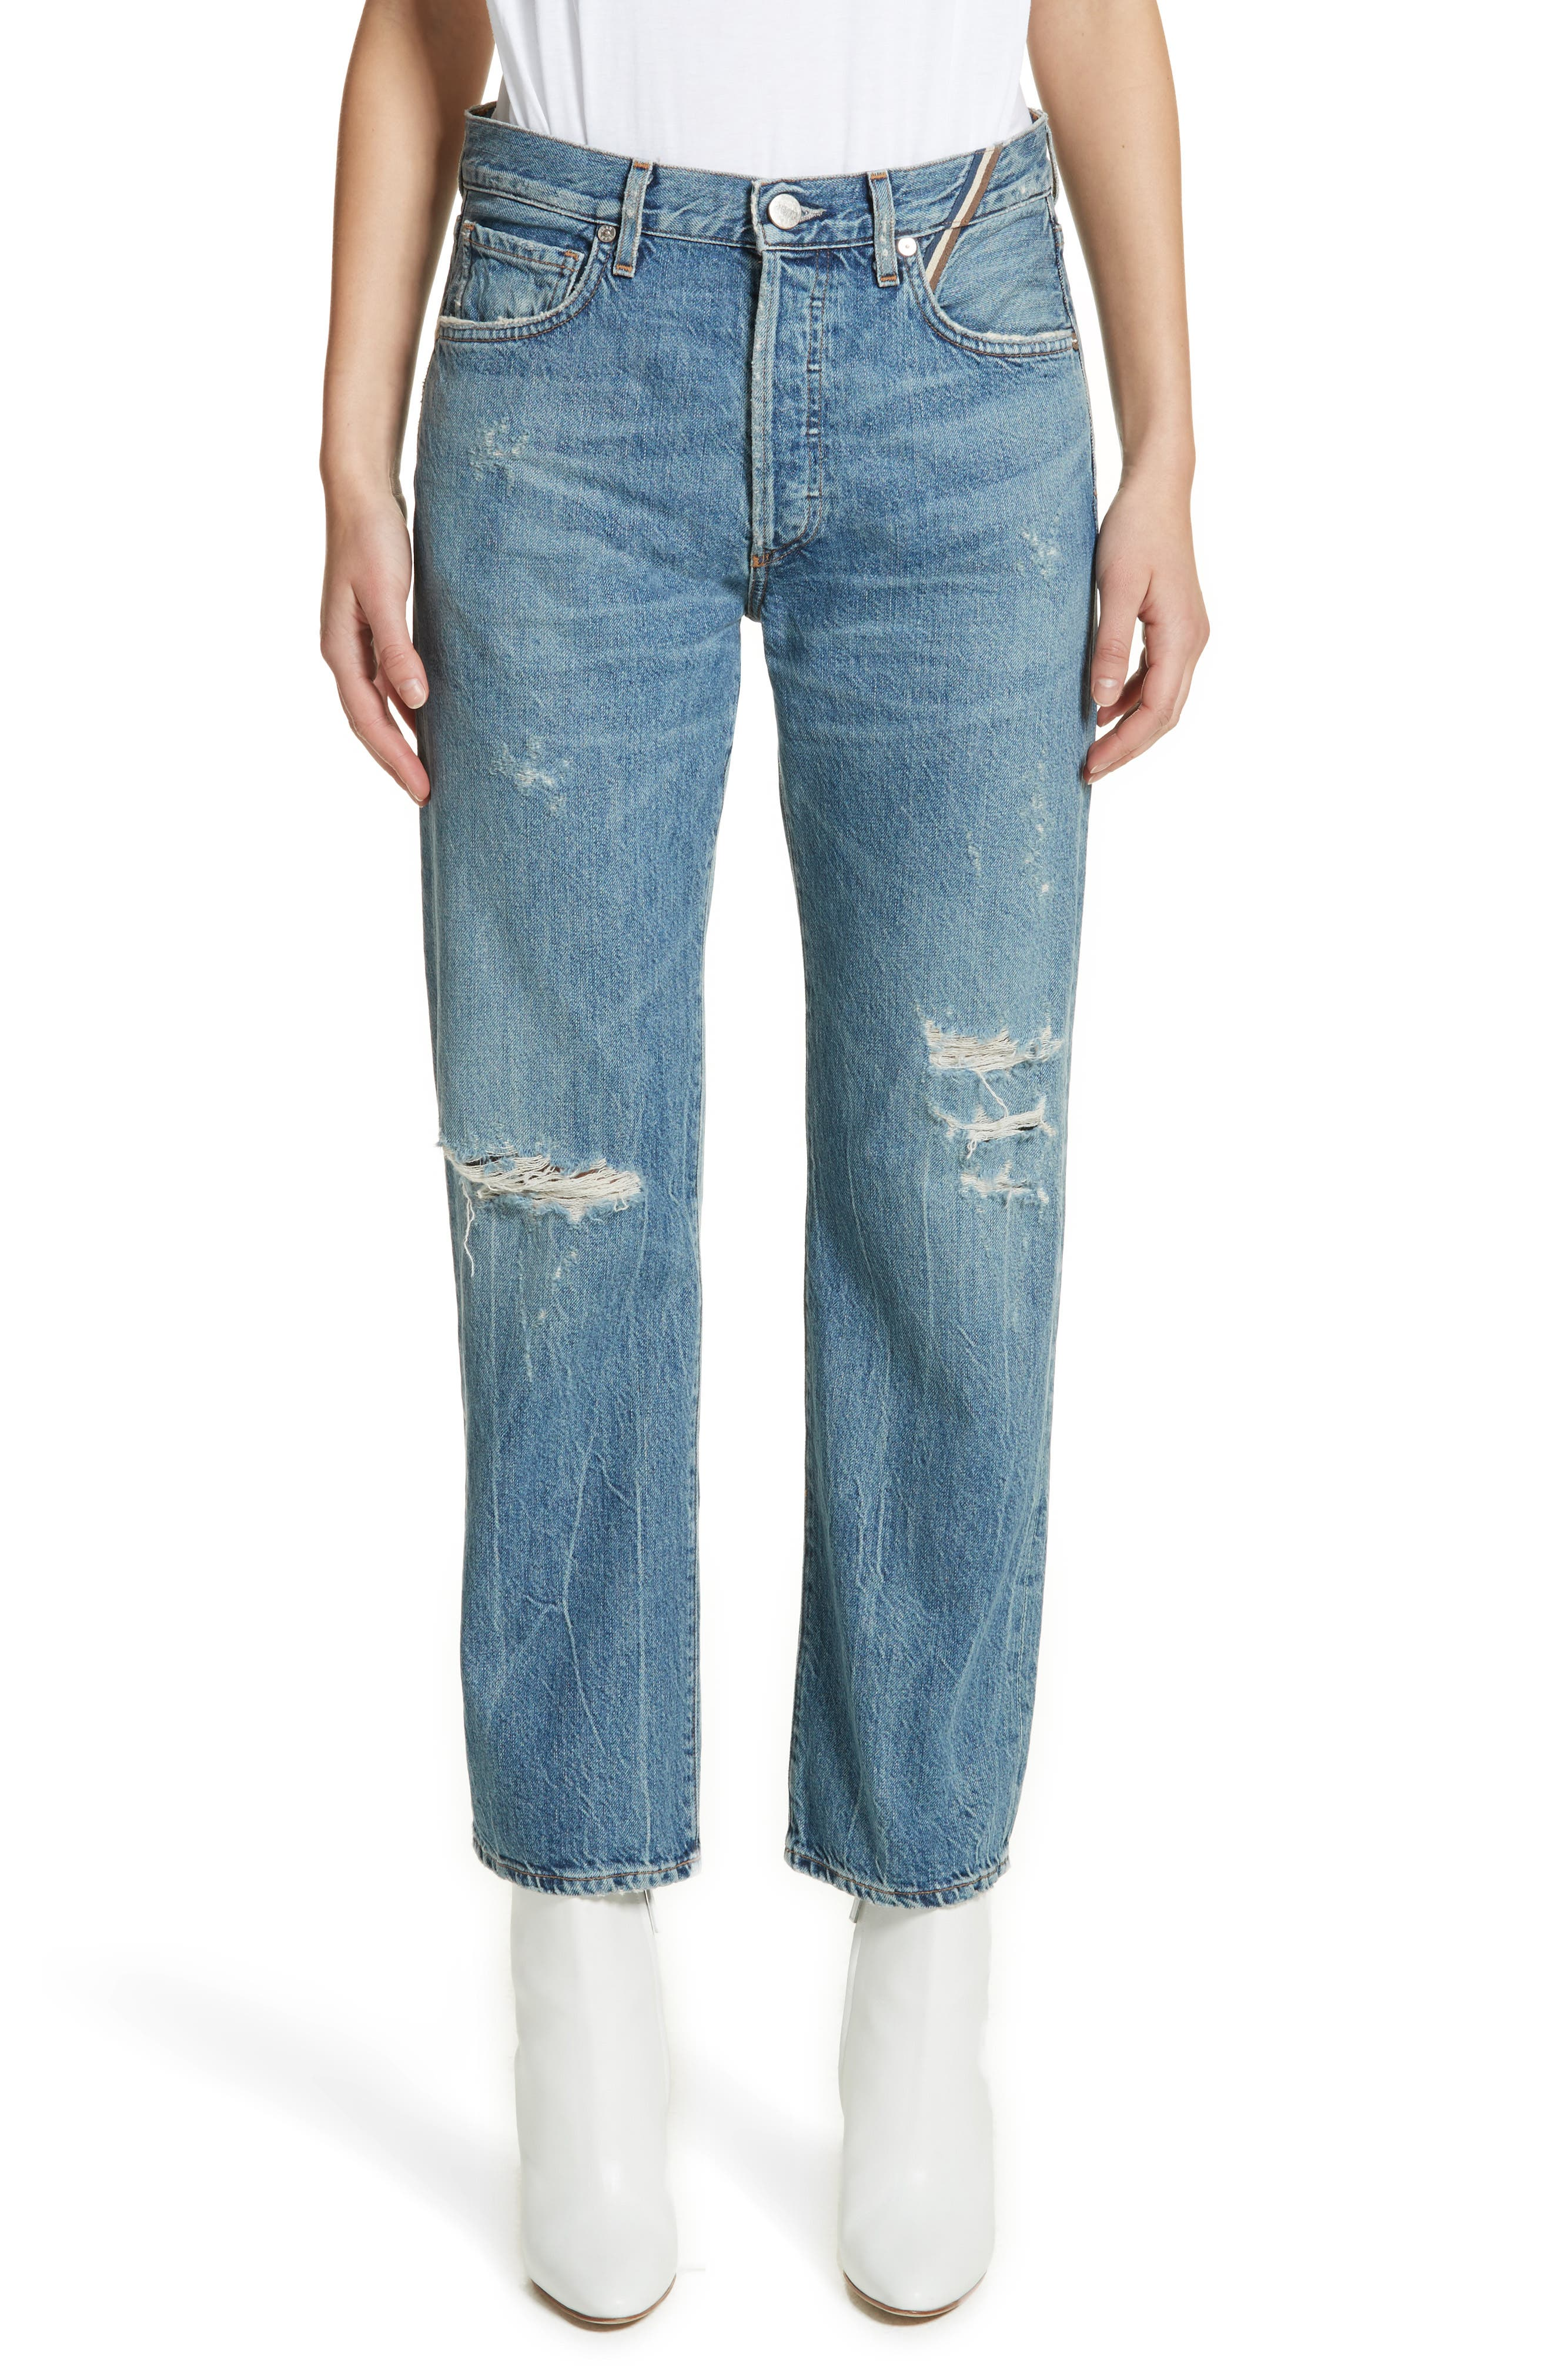 Jean Atelier Laurent High Rise Distressed Boyfriend Jeans (Vintage)